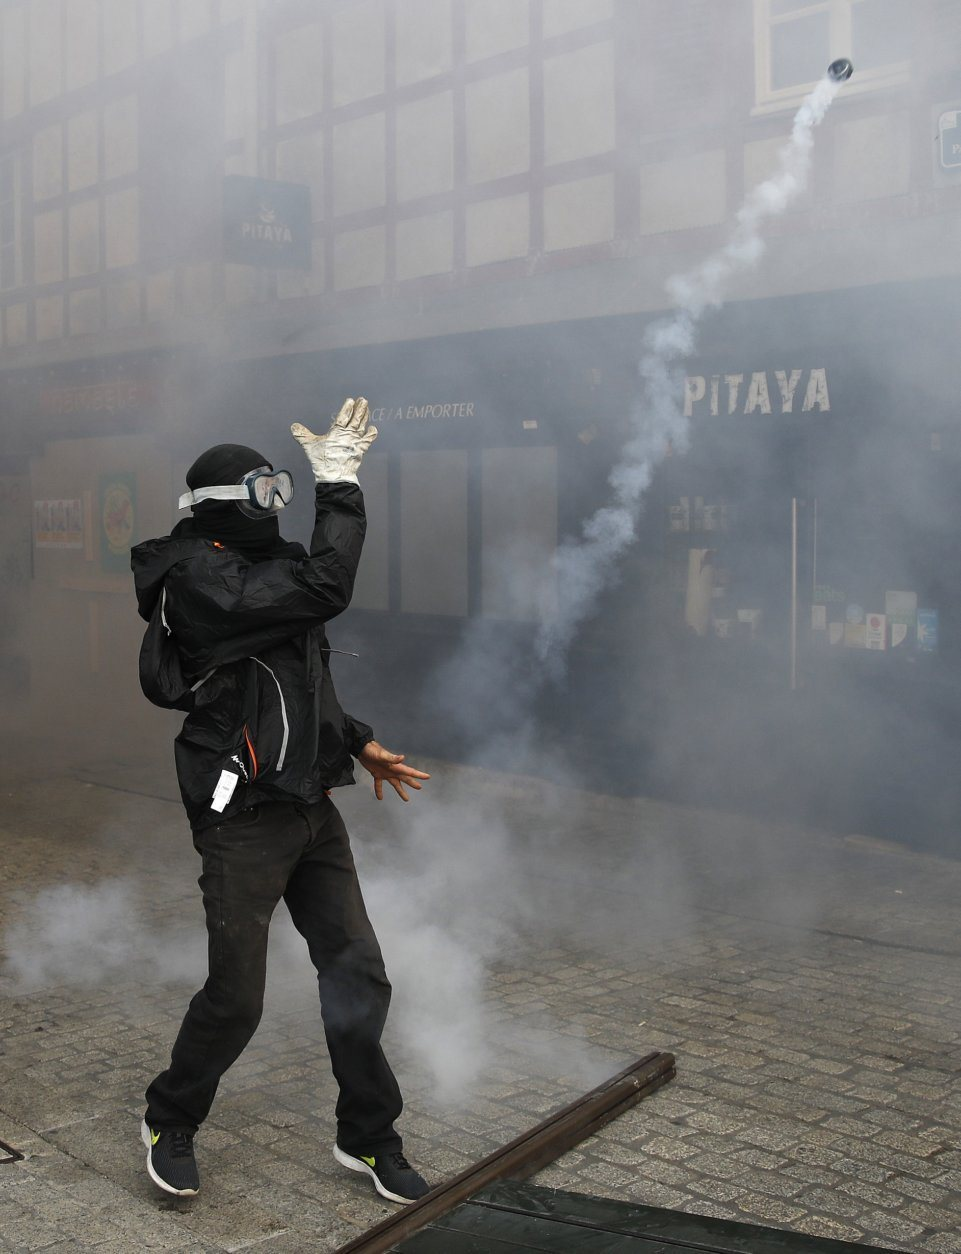 A protestor throws away a teargas canister fired by police in Bayonne, France, Saturday, Aug. 24, 2019. World leaders and protesters are converging on the southern French resort town of Biarritz for the G-7 summit. Police have fired water cannon at about 400 anti-capitalist protesters blocking roads in a town near the venue of the G-7 summit. A few protesters threw rocks at police but the crowd in Bayonne was largely peaceful. (AP Photo/Emilio Morenatti)